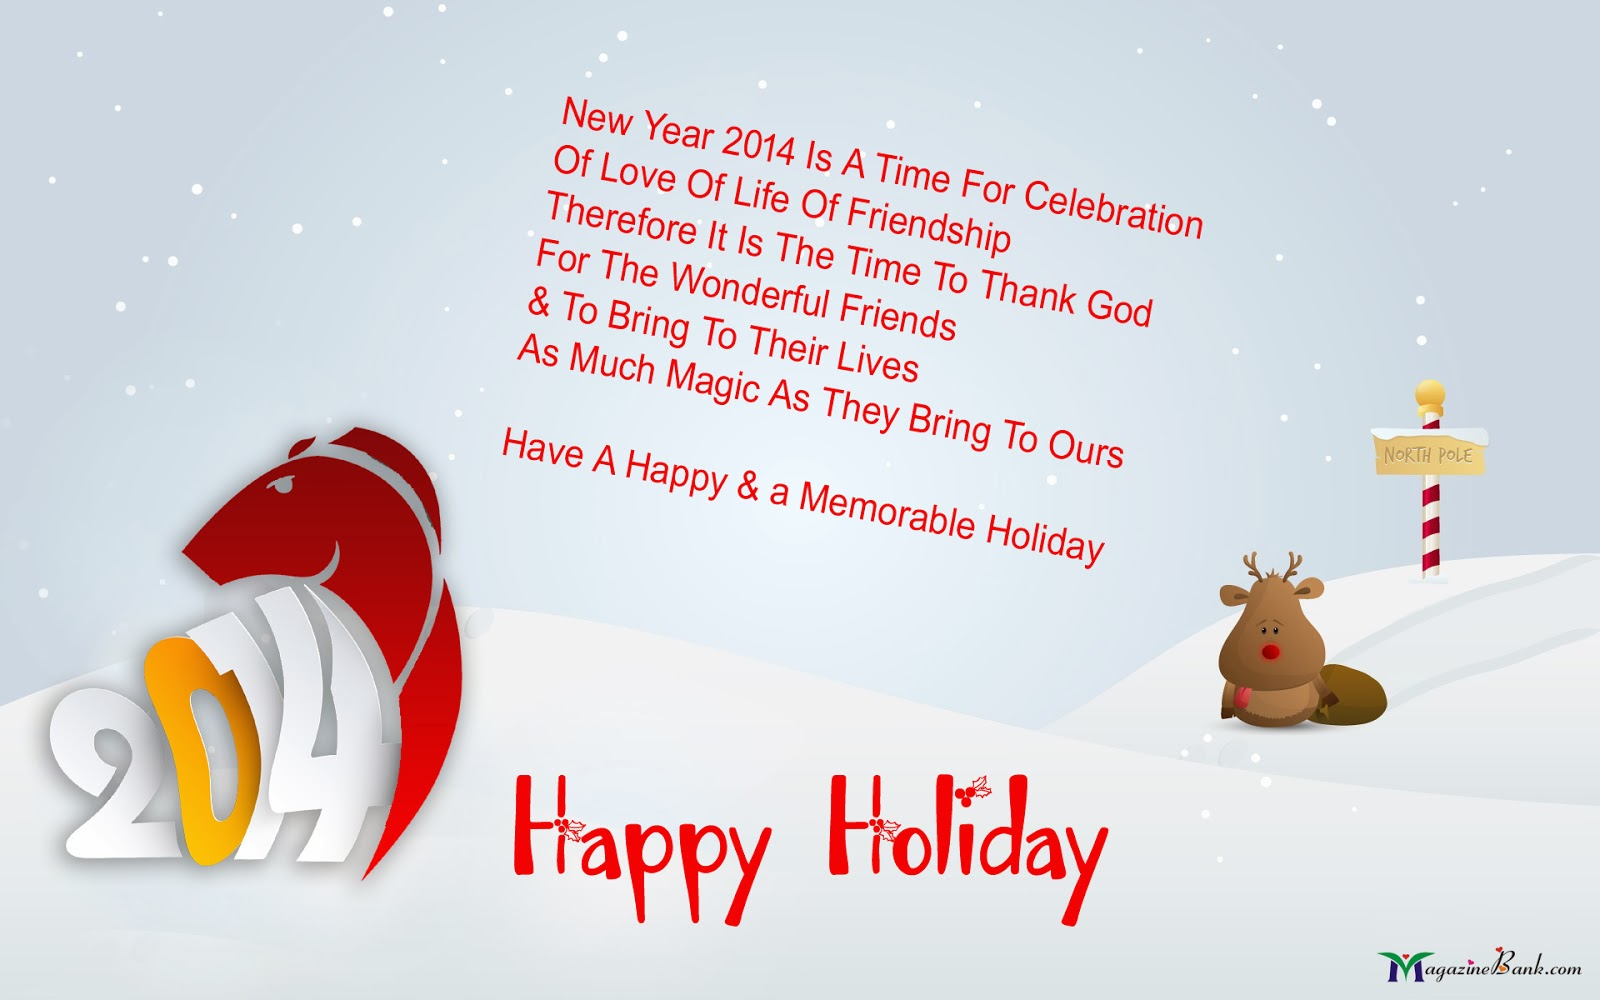 Holiday Season Quotes Inspirational Quotesgram: Happy Holidays Quotes For Winter. QuotesGram